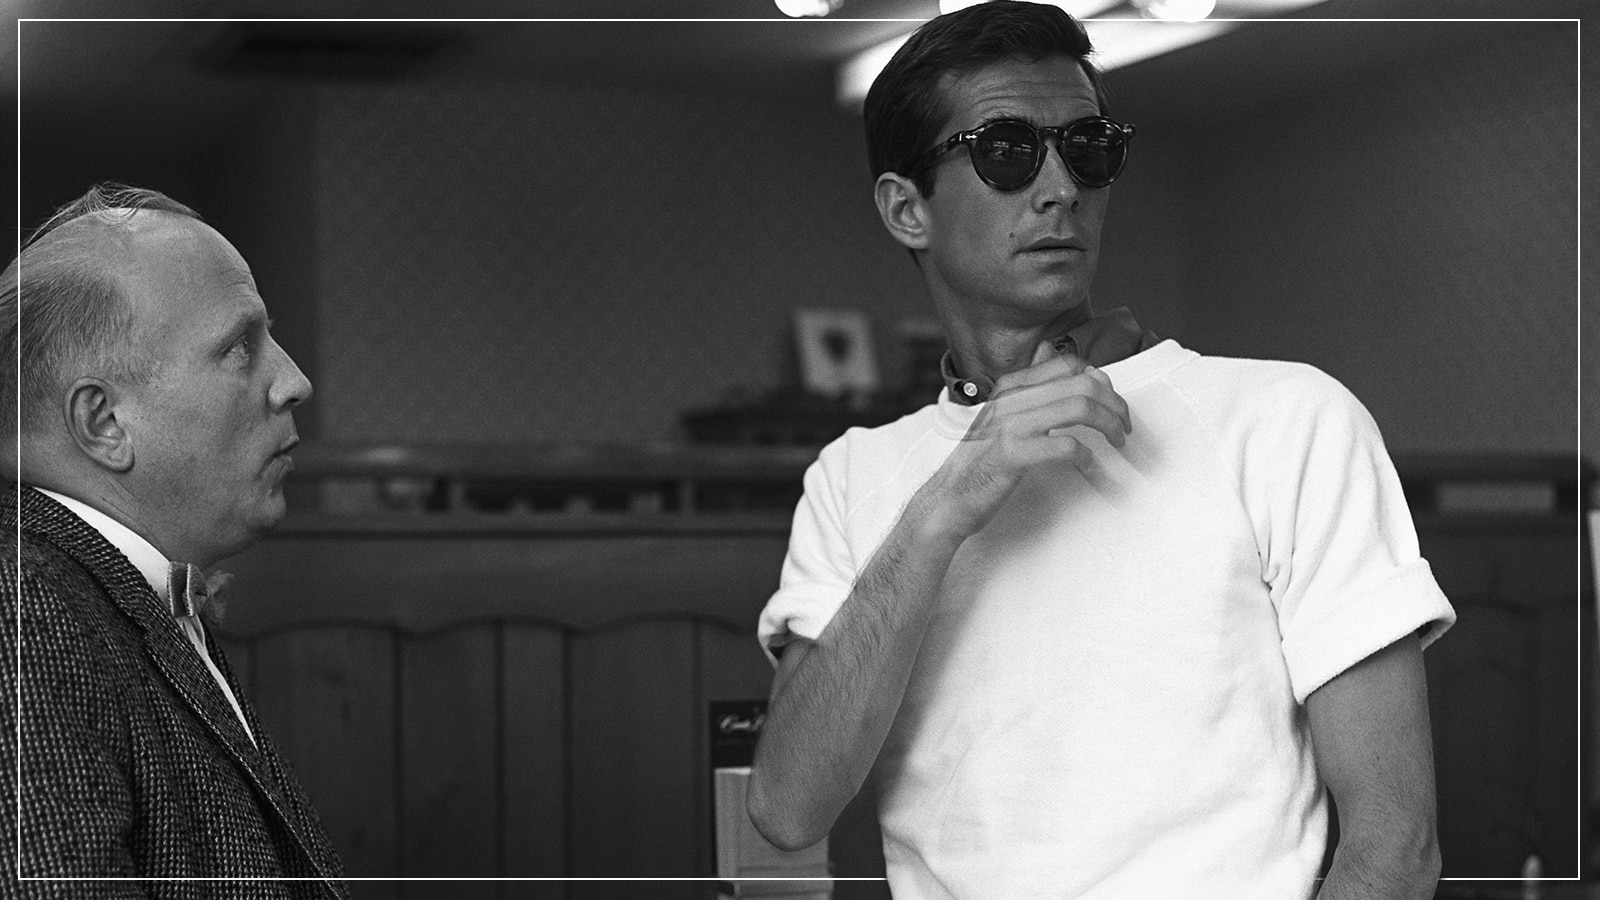 The Men Who Wore Sunglasses Best The Journal Mr Porter All criticism in the comments section must be constructive. the men who wore sunglasses best the